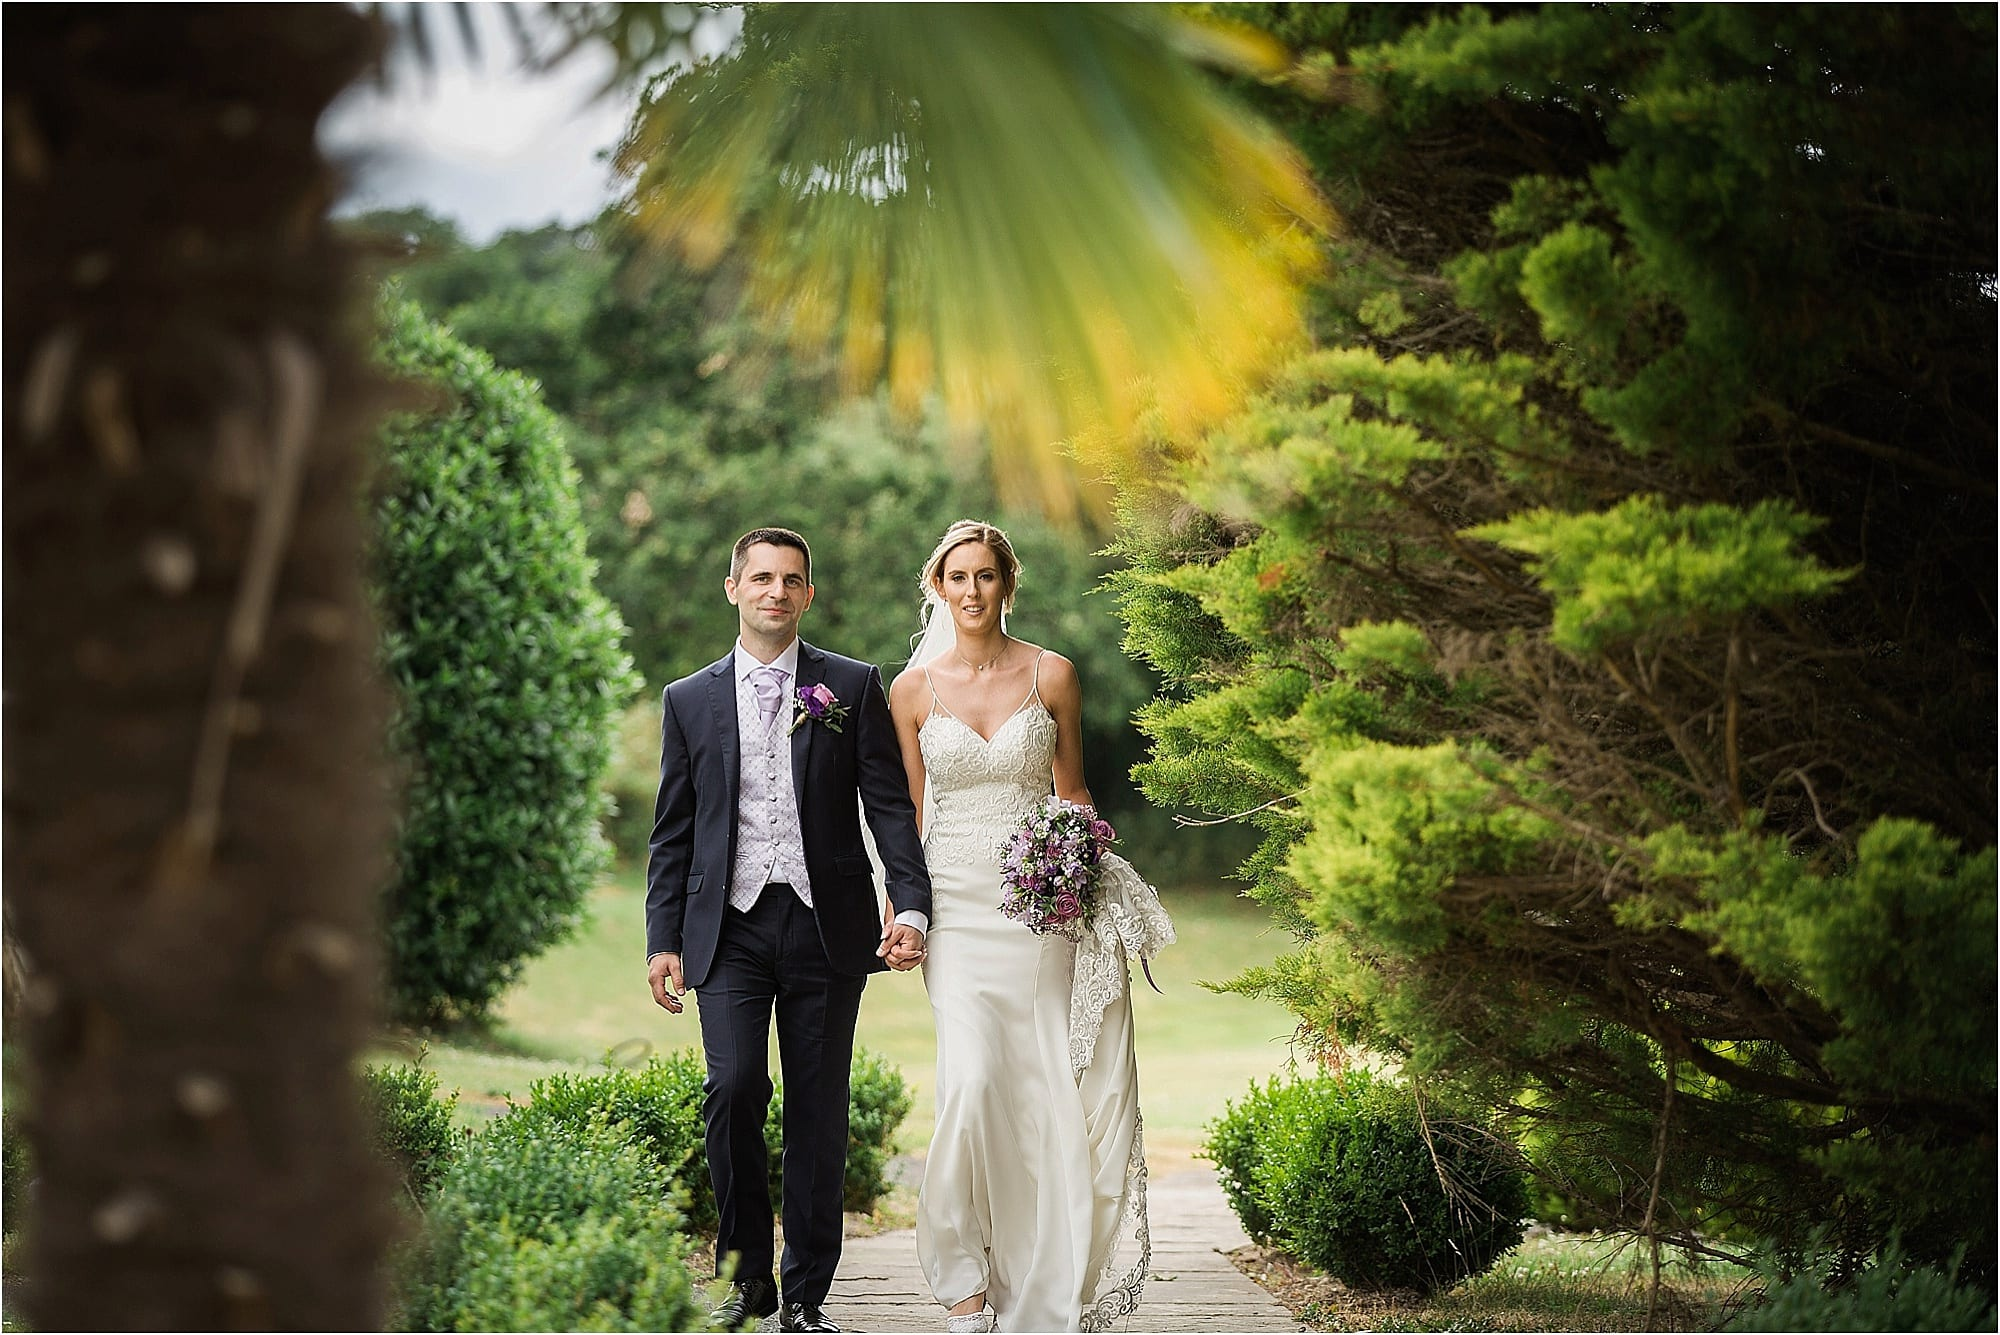 Younger weddings round up 2019